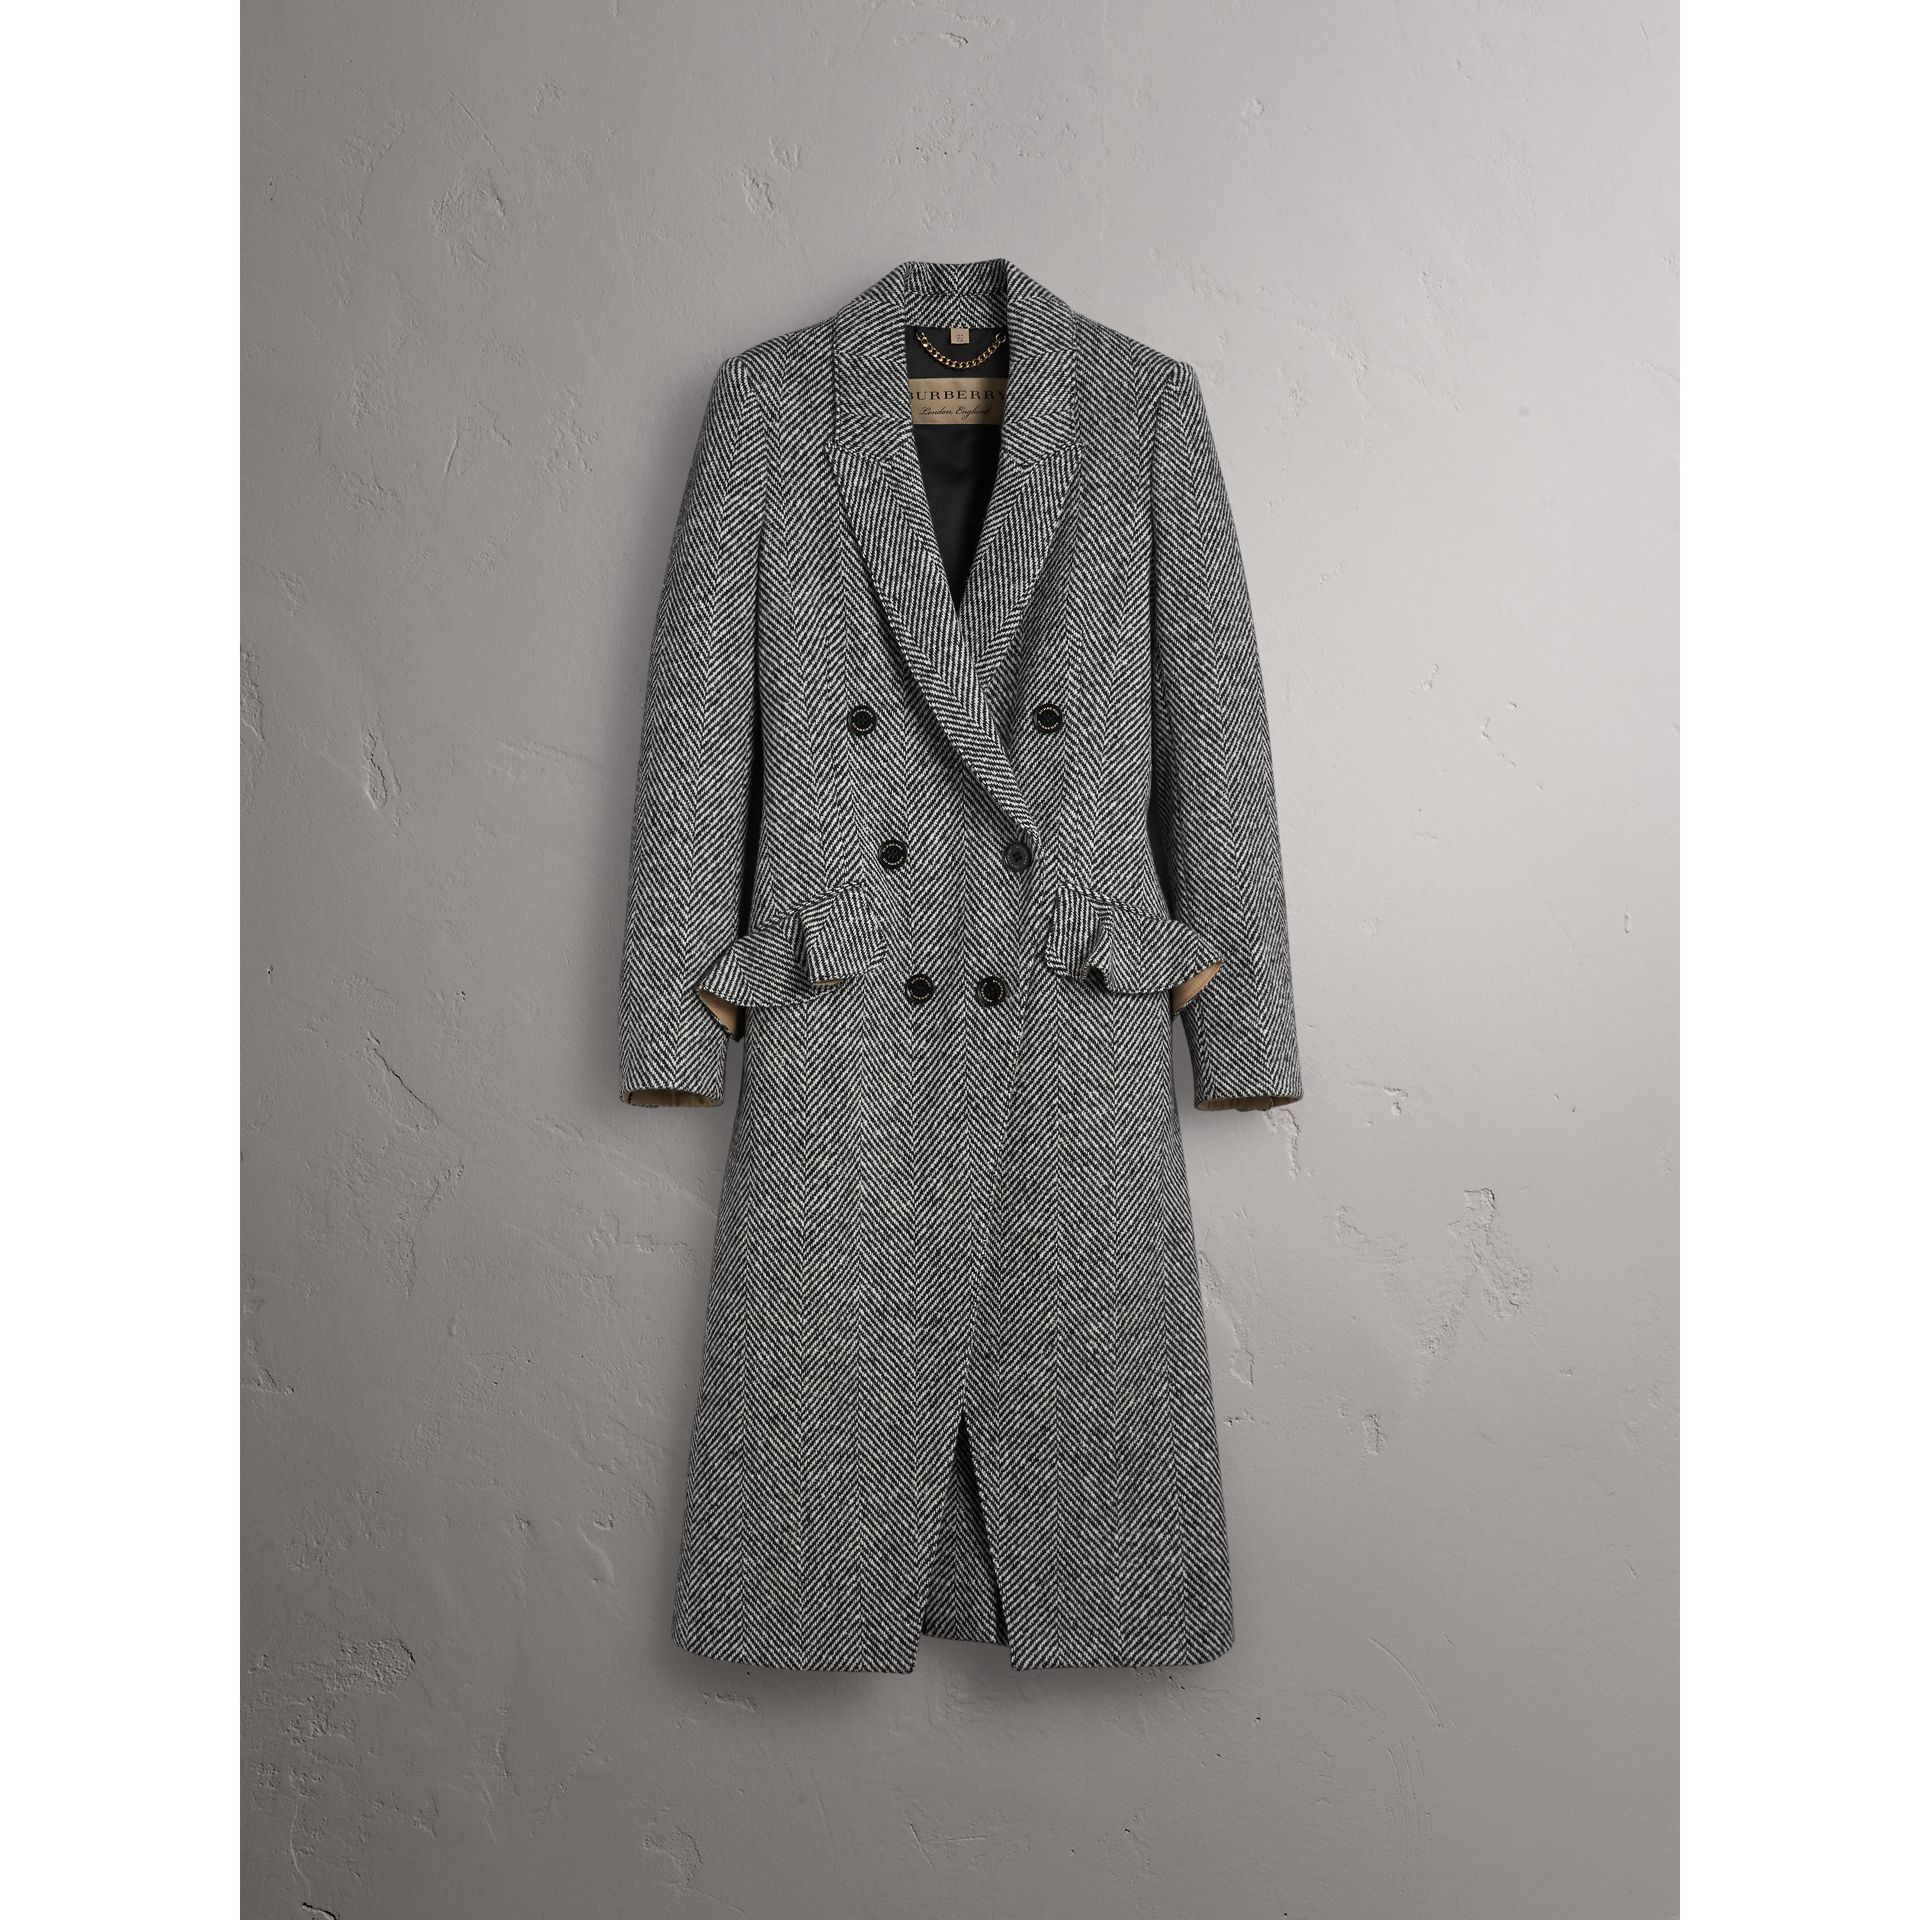 Donegal Herringbone Wool Tweed Tailored Coat - Women | Burberry - gallery image 4